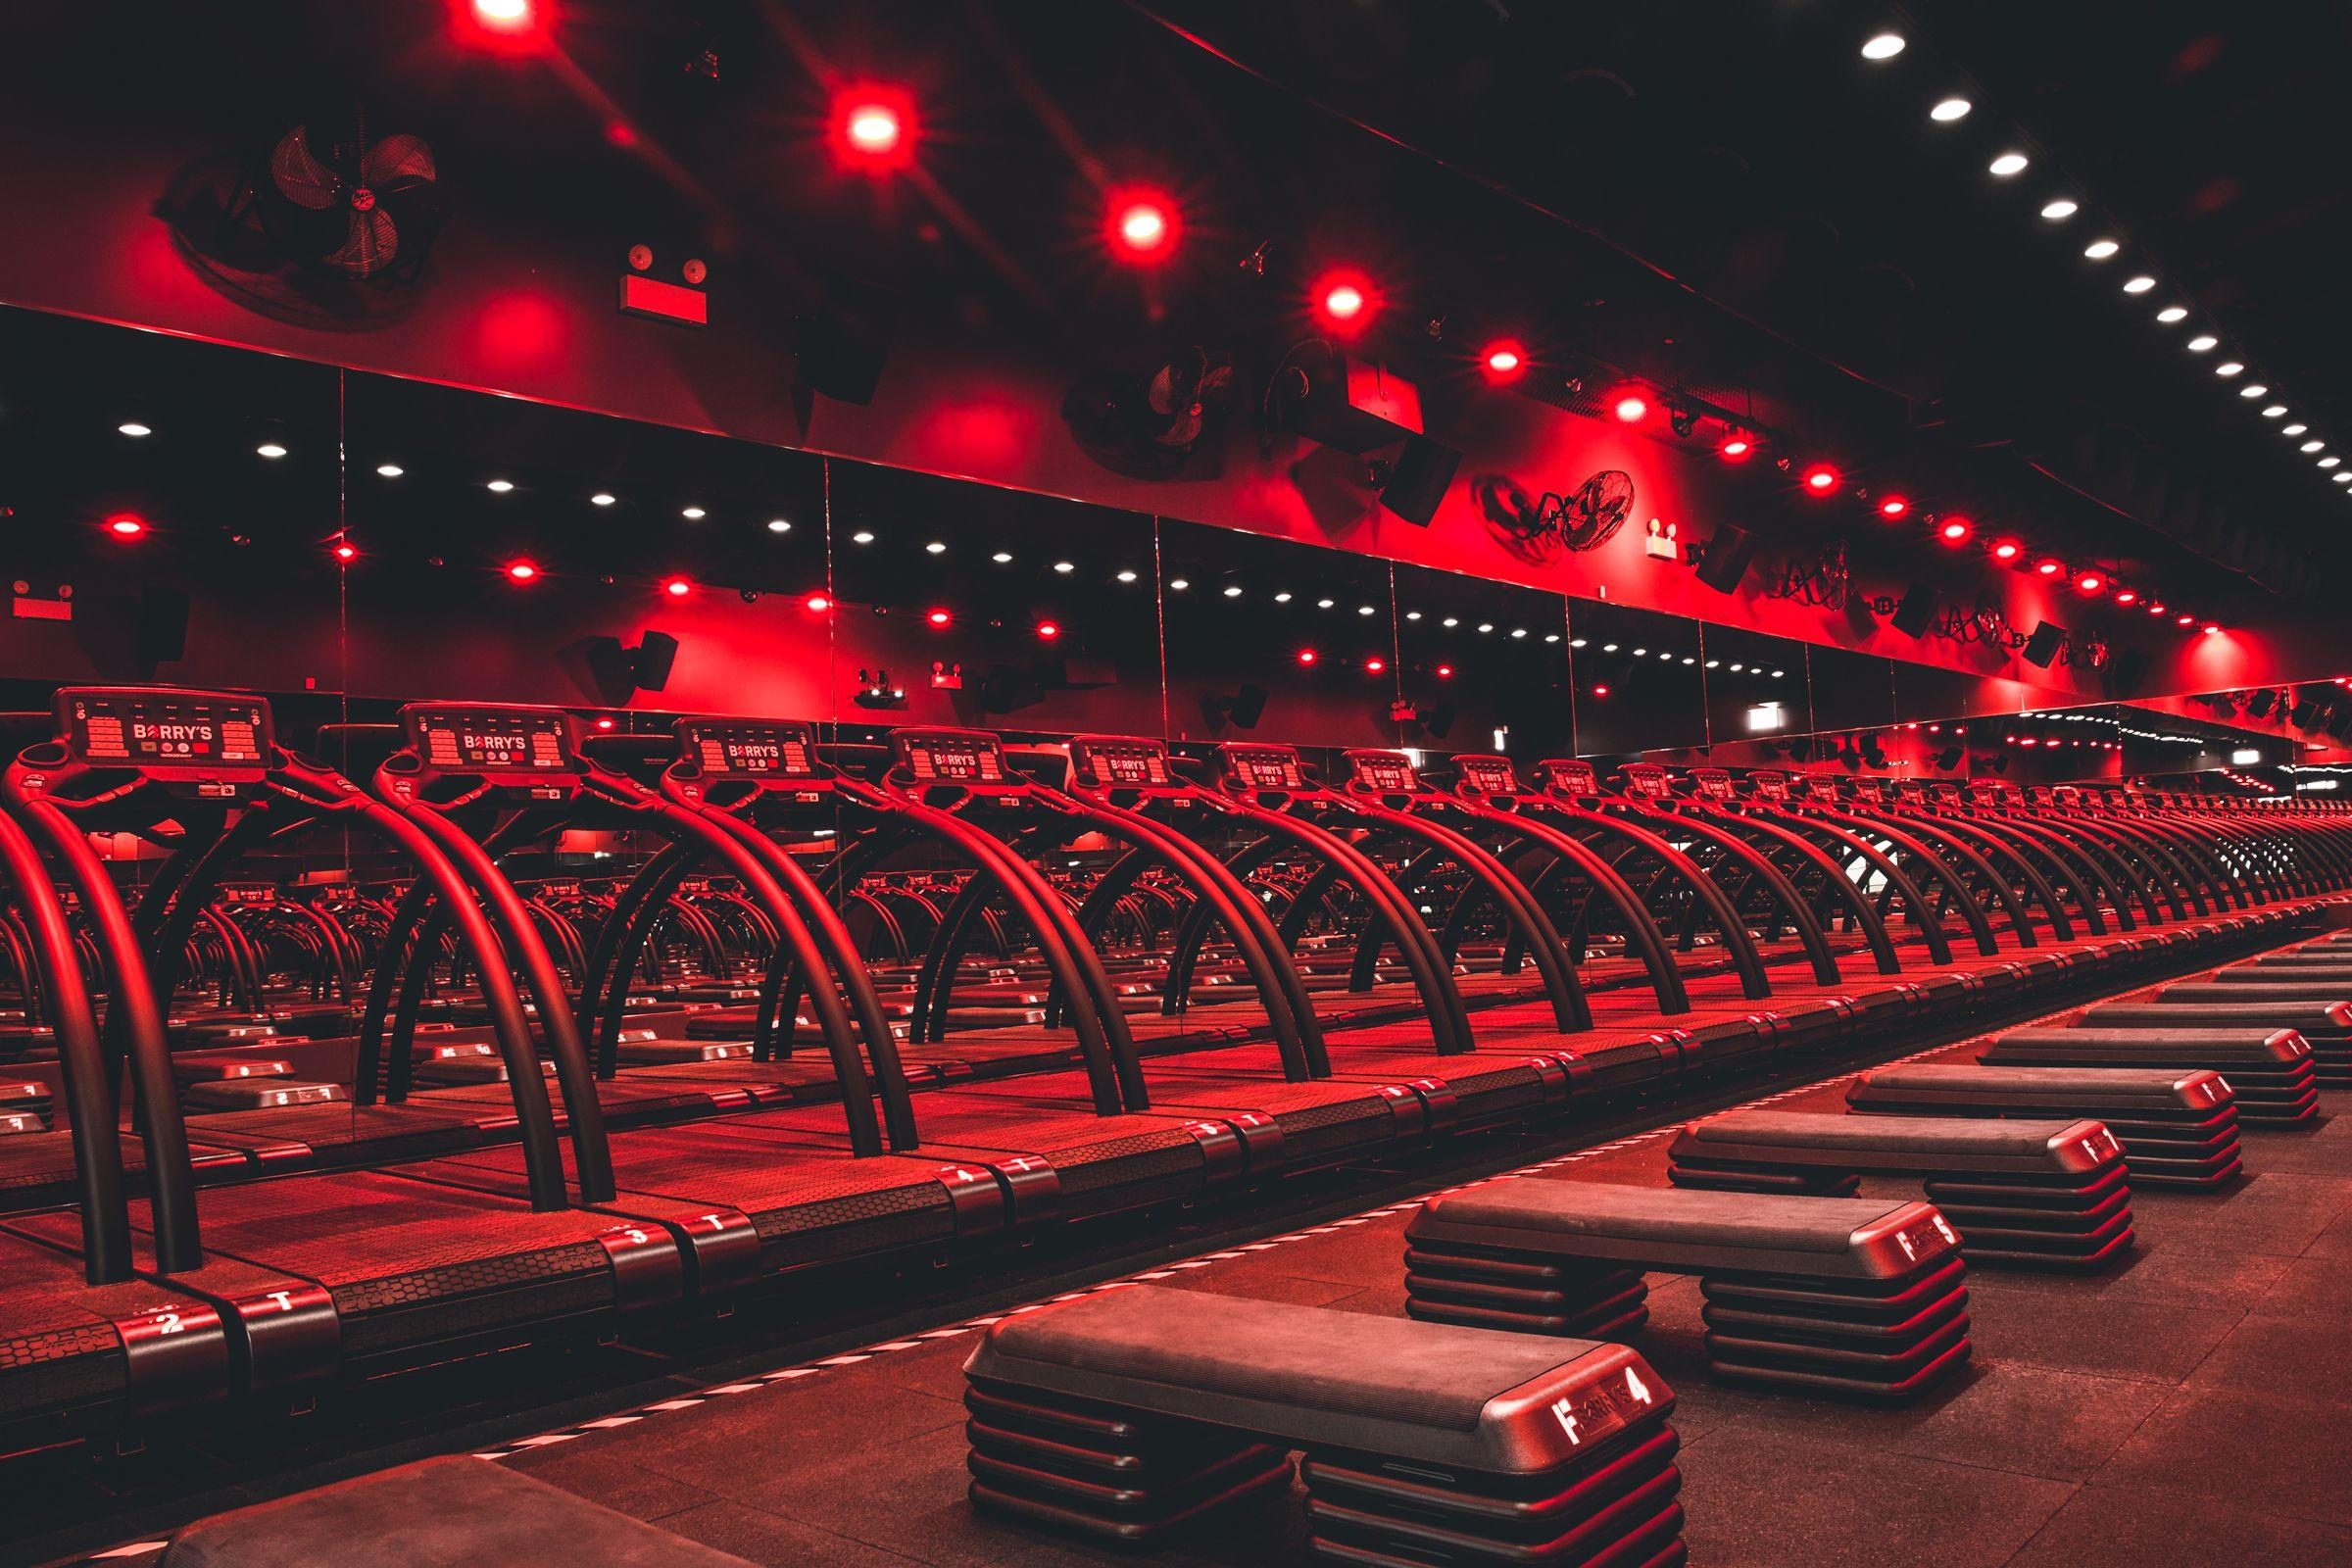 © Barry's Bootcamp